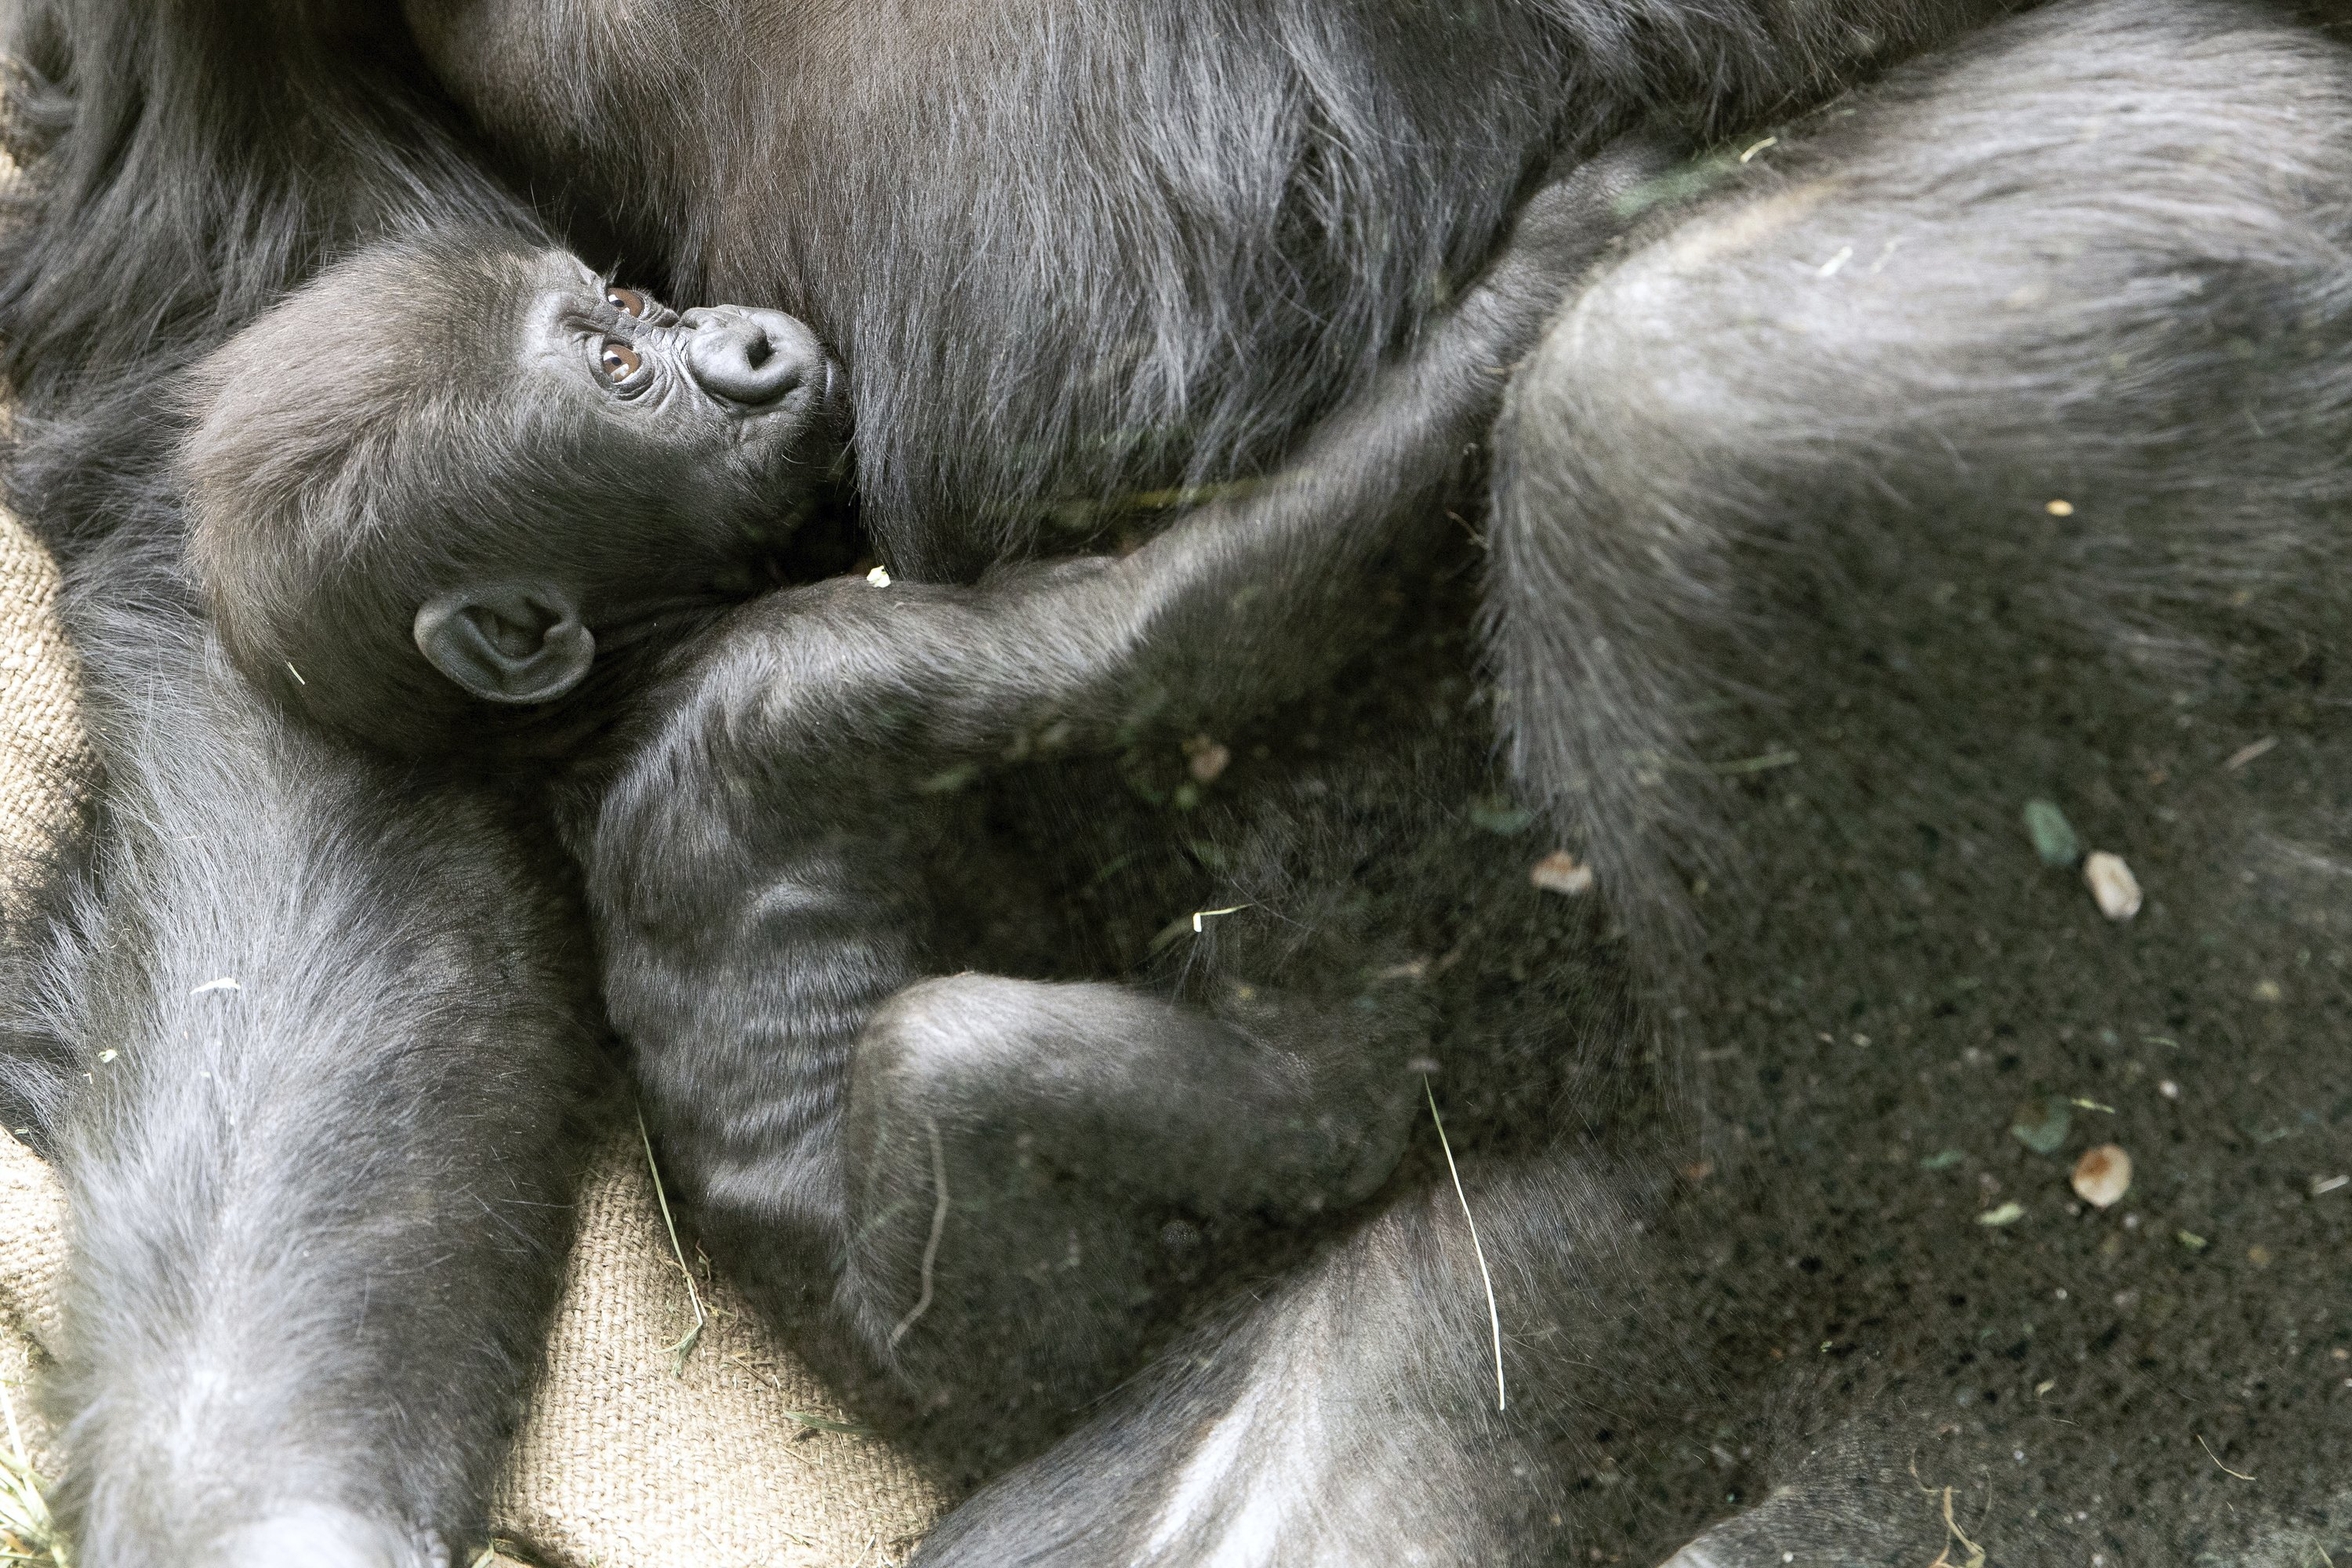 Baby gorilla badly injured in family skirmish at Seattle zoo